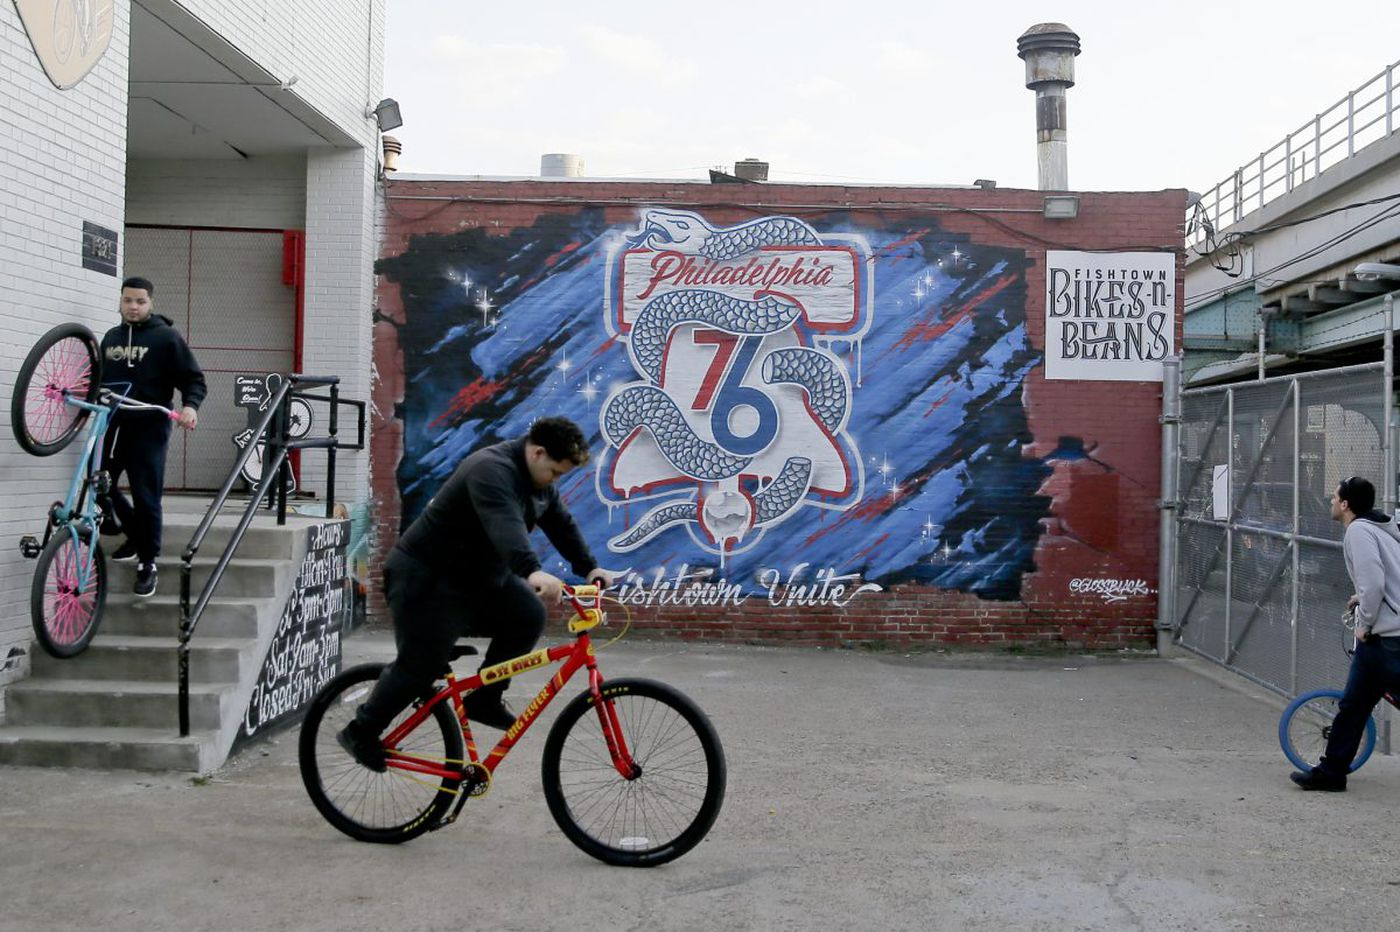 A Liberty Bell and a severed snake: 76ers marketing looks to score a big win